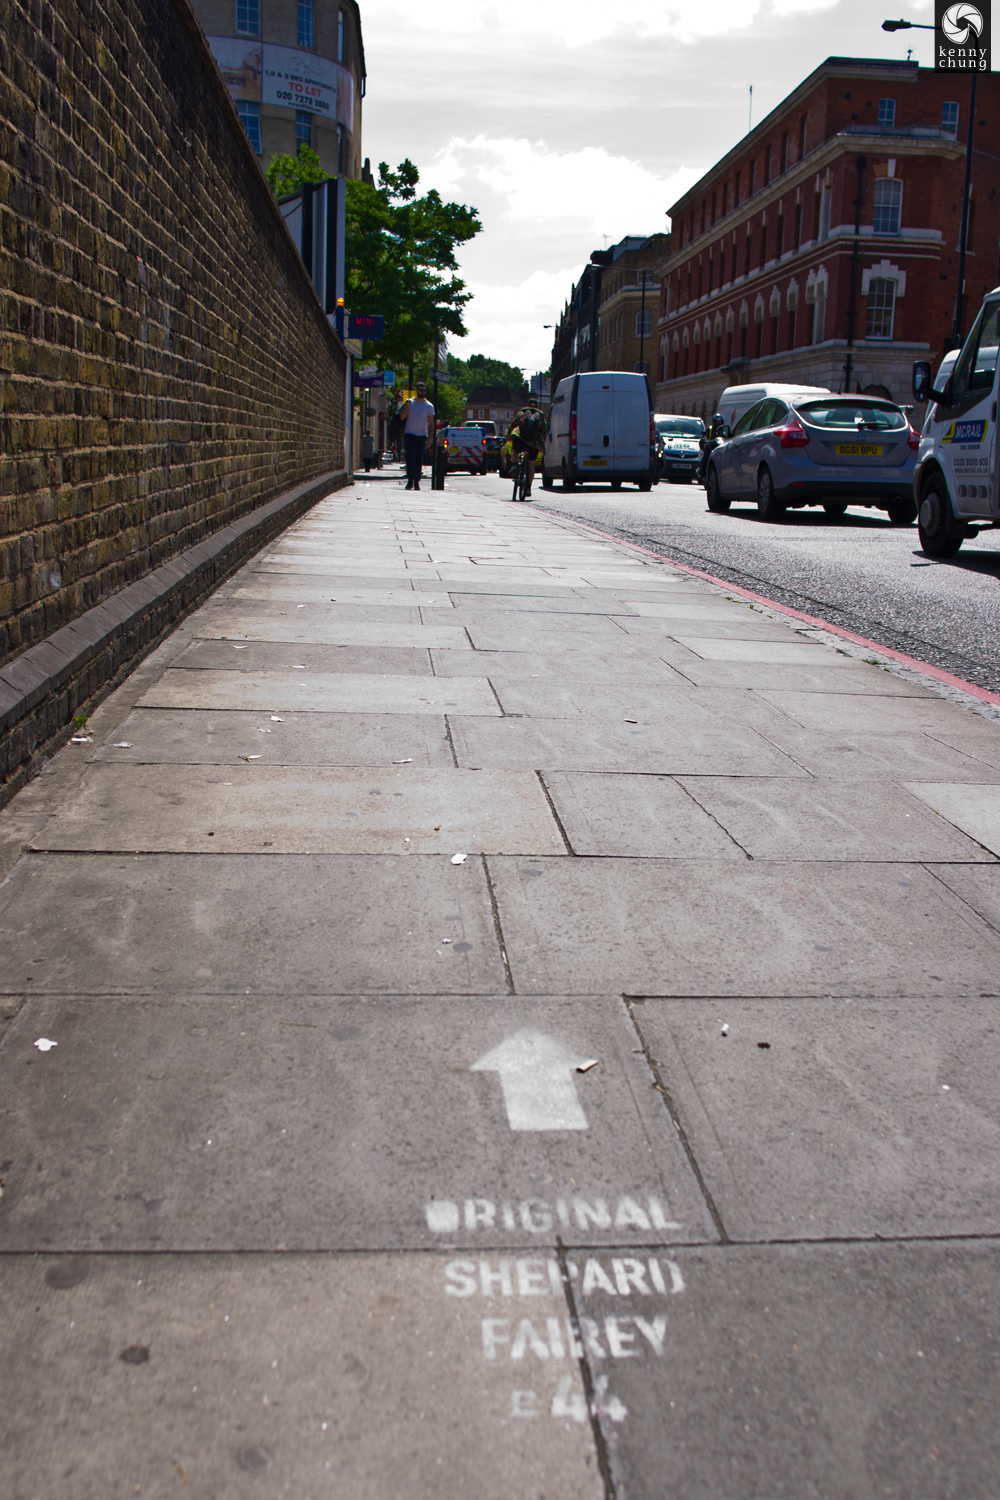 Original Shepard Fairey sidewalk graffiti prank in Shoreditch